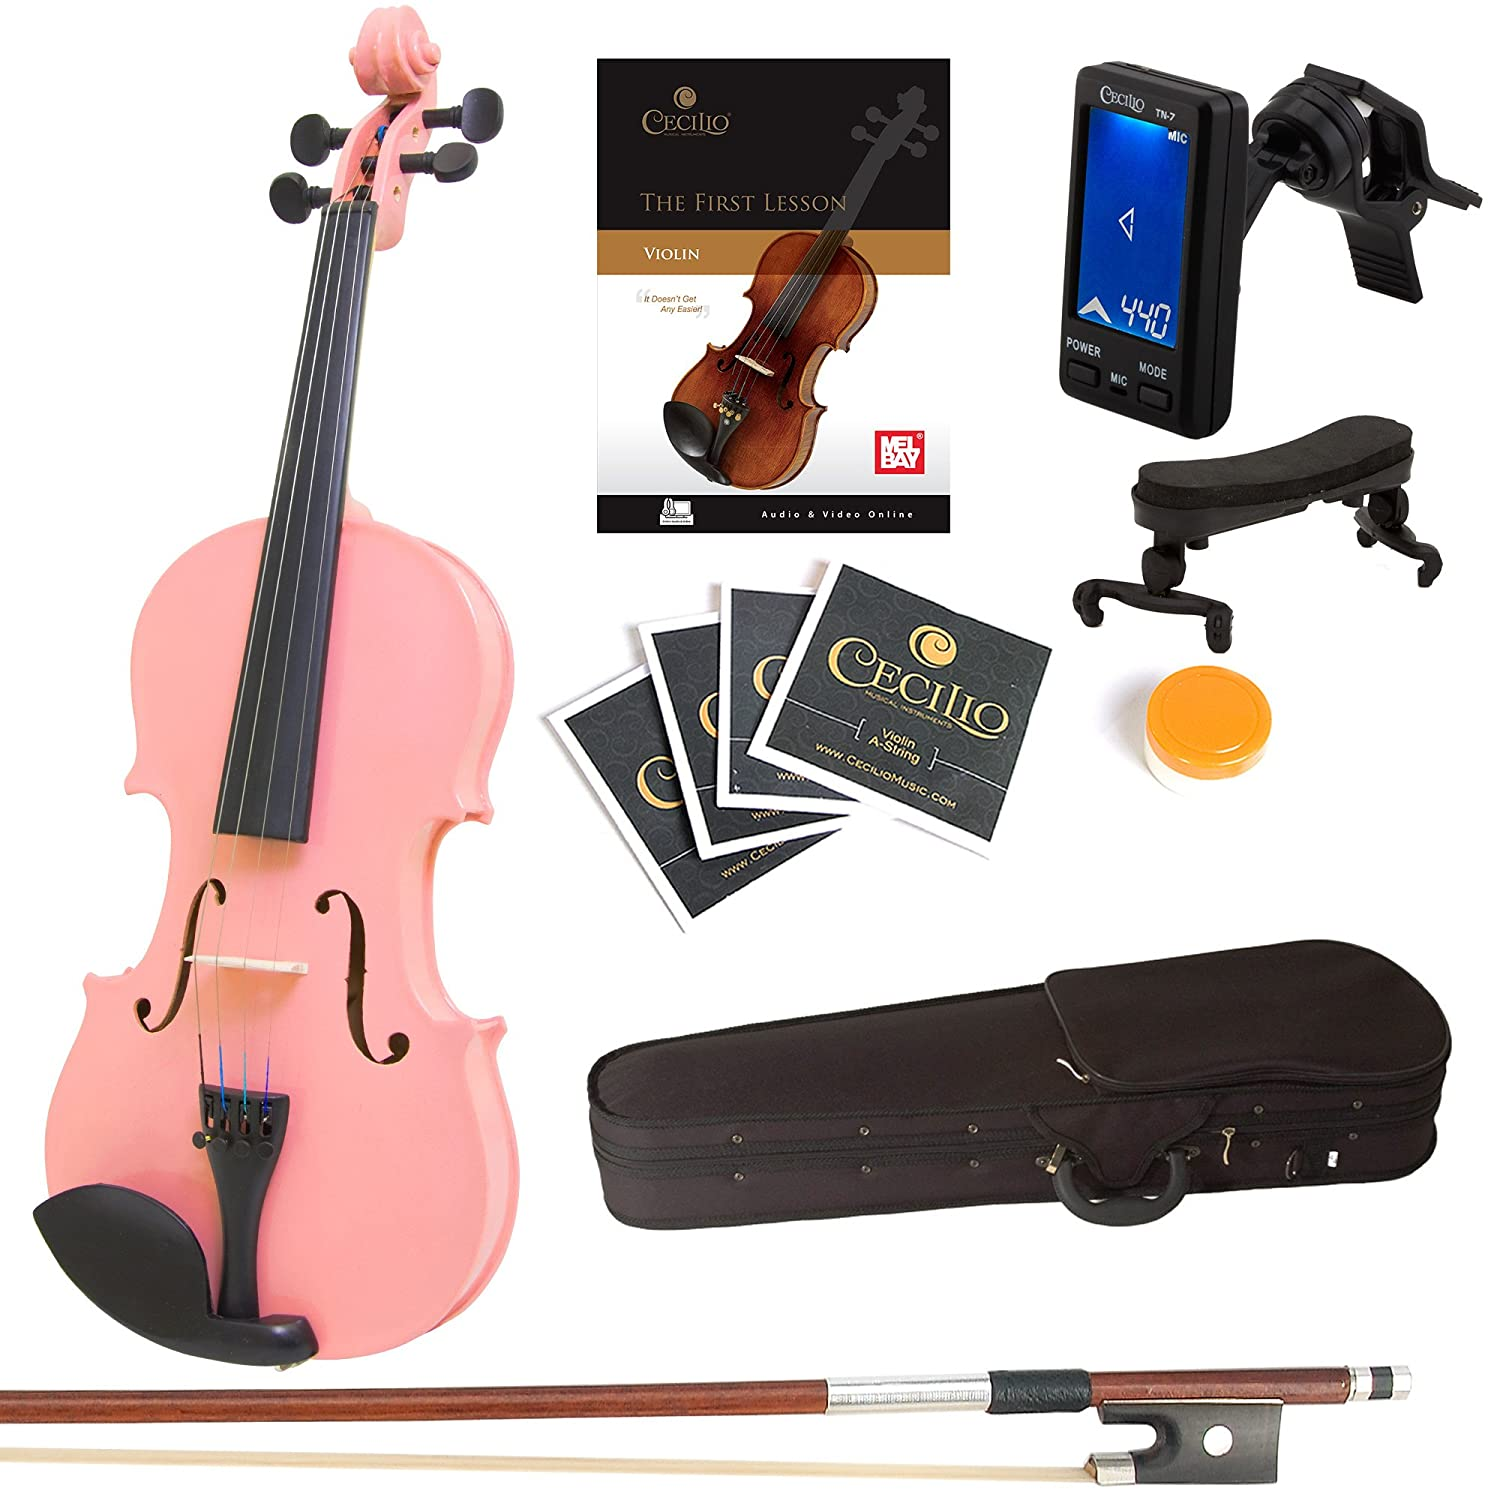 Mendini 4/4 MV-Black Solid Wood Violin with Tuner, Lesson Book, Shoulder Rest, Extra Strings, Bow and Case, Metallic Black Full Size Cecilio Musical Instruments 4/4MV-Black+SR+TN7+FB1